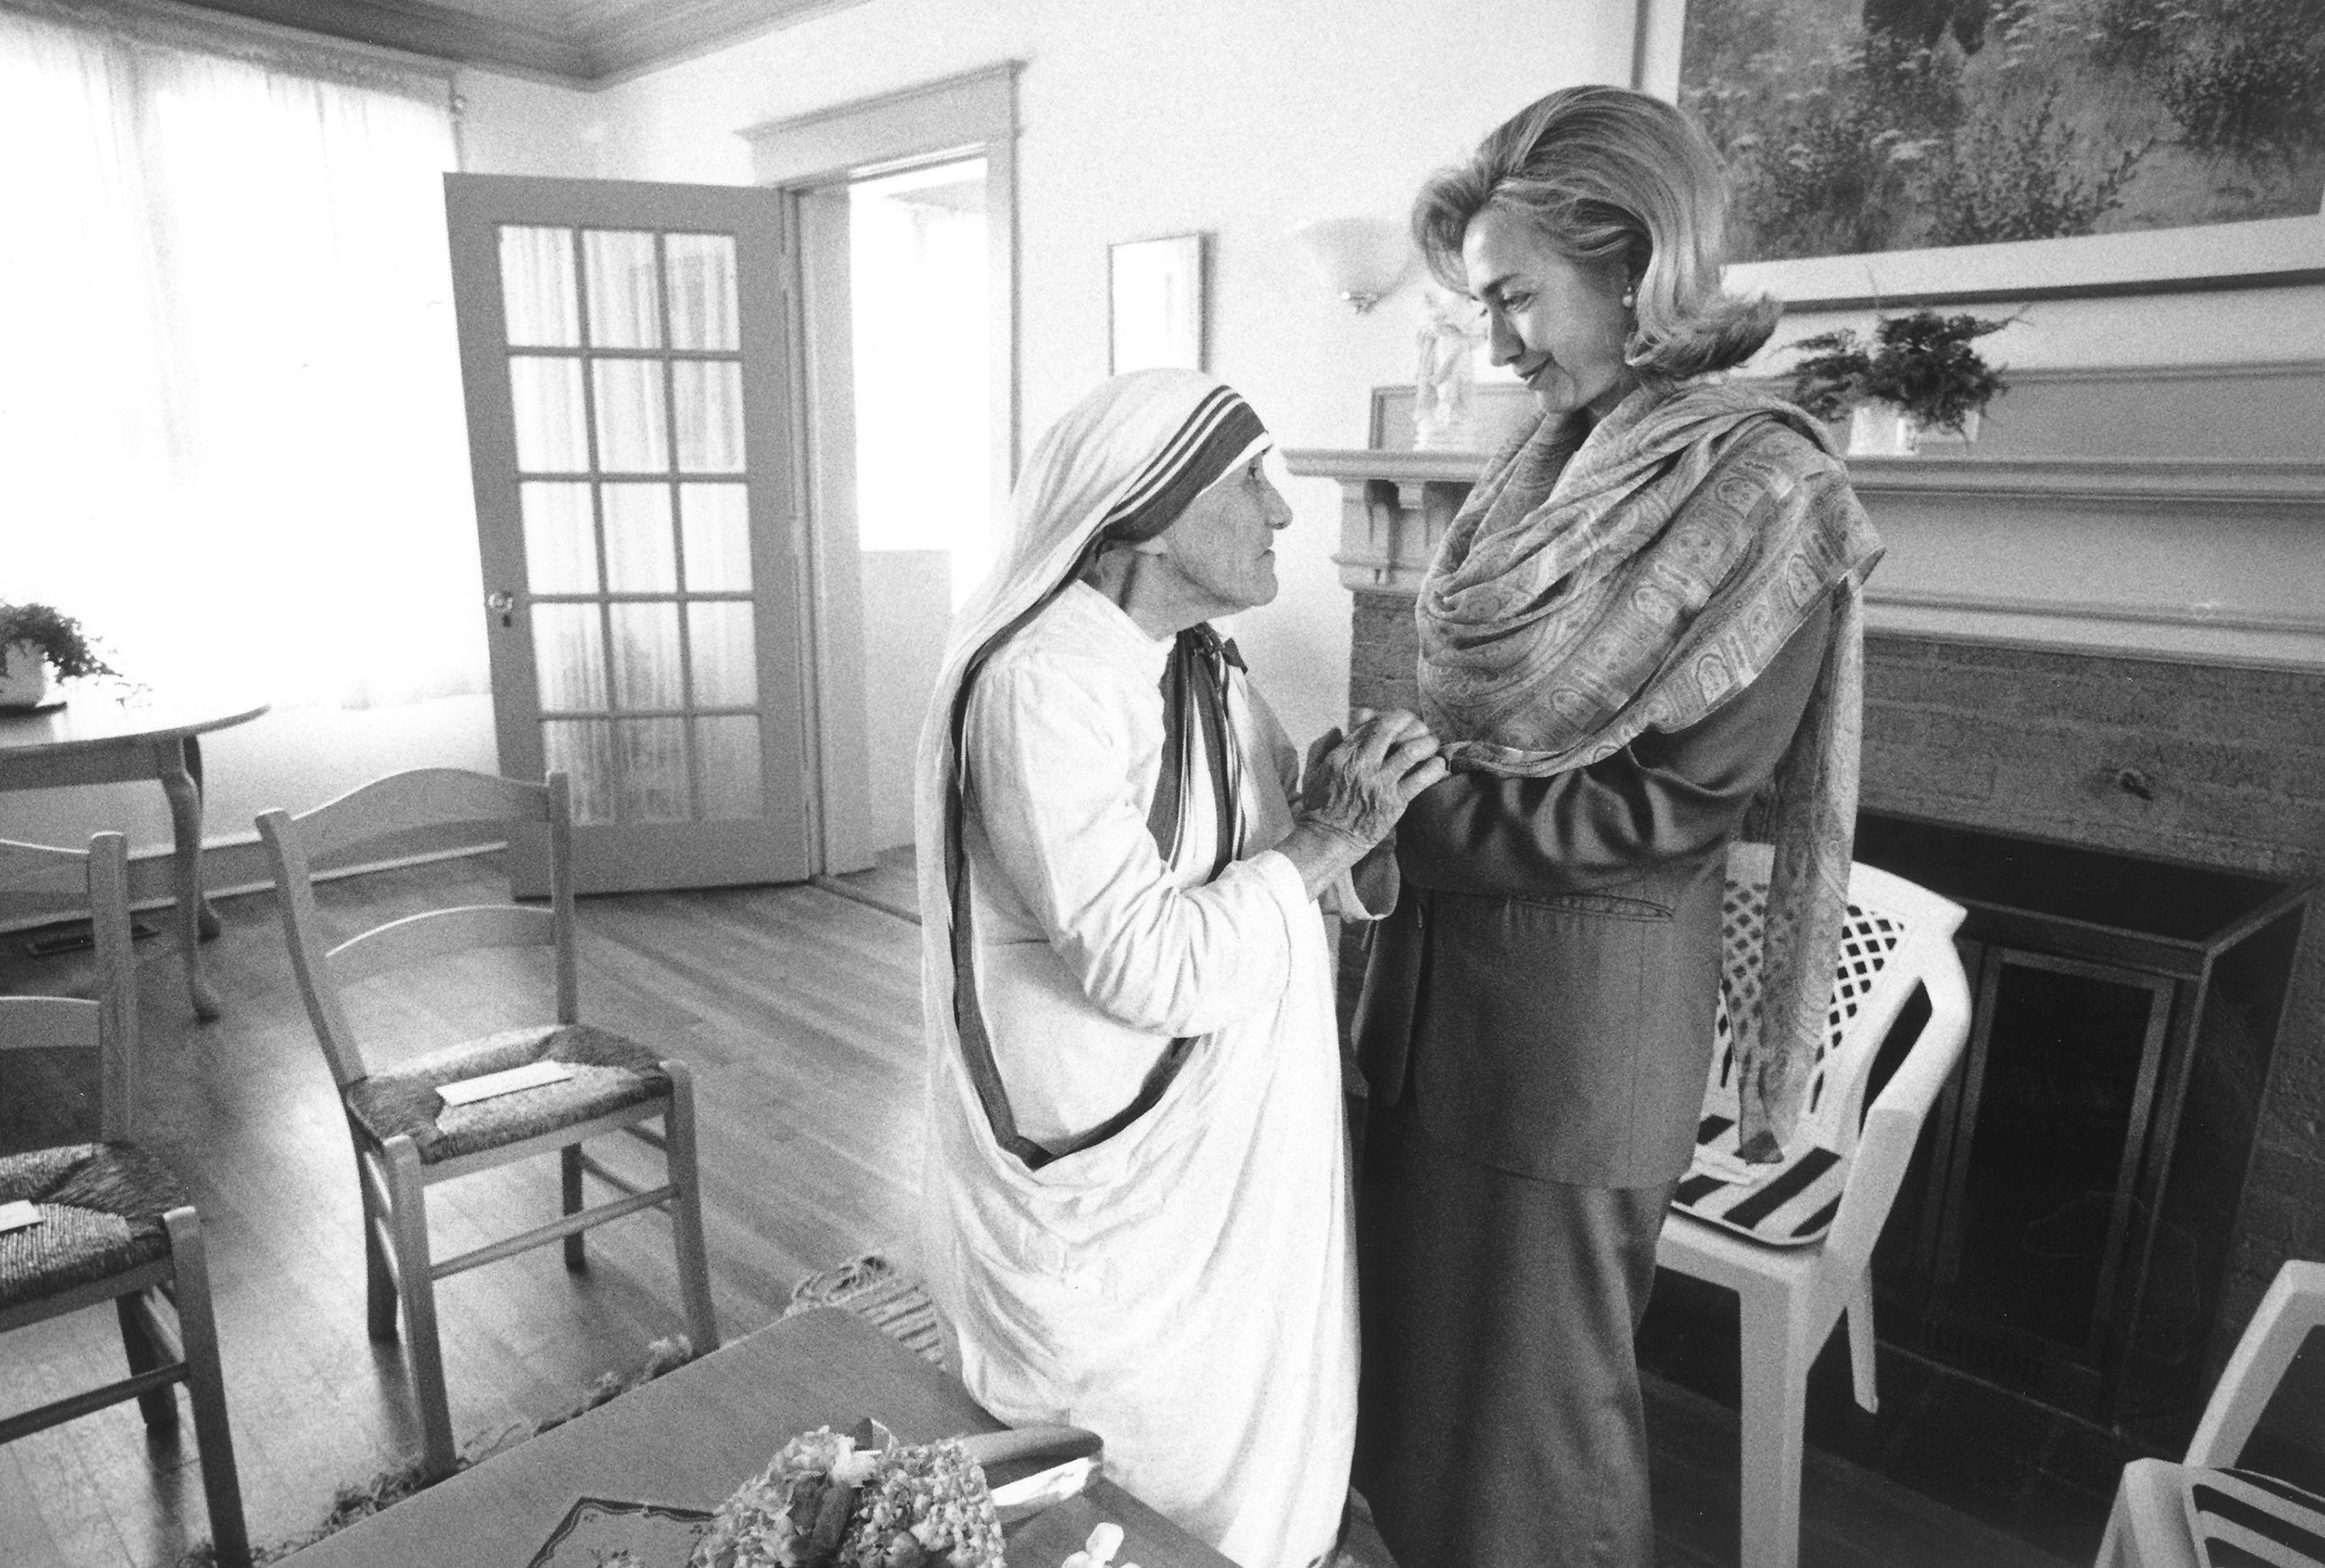 First Lady Hillary Rodham Clinton meets with Mother Teresa at the opening of the Mother Teresa Home for Infant Children in Washington, D.C., on June 19, 1995.